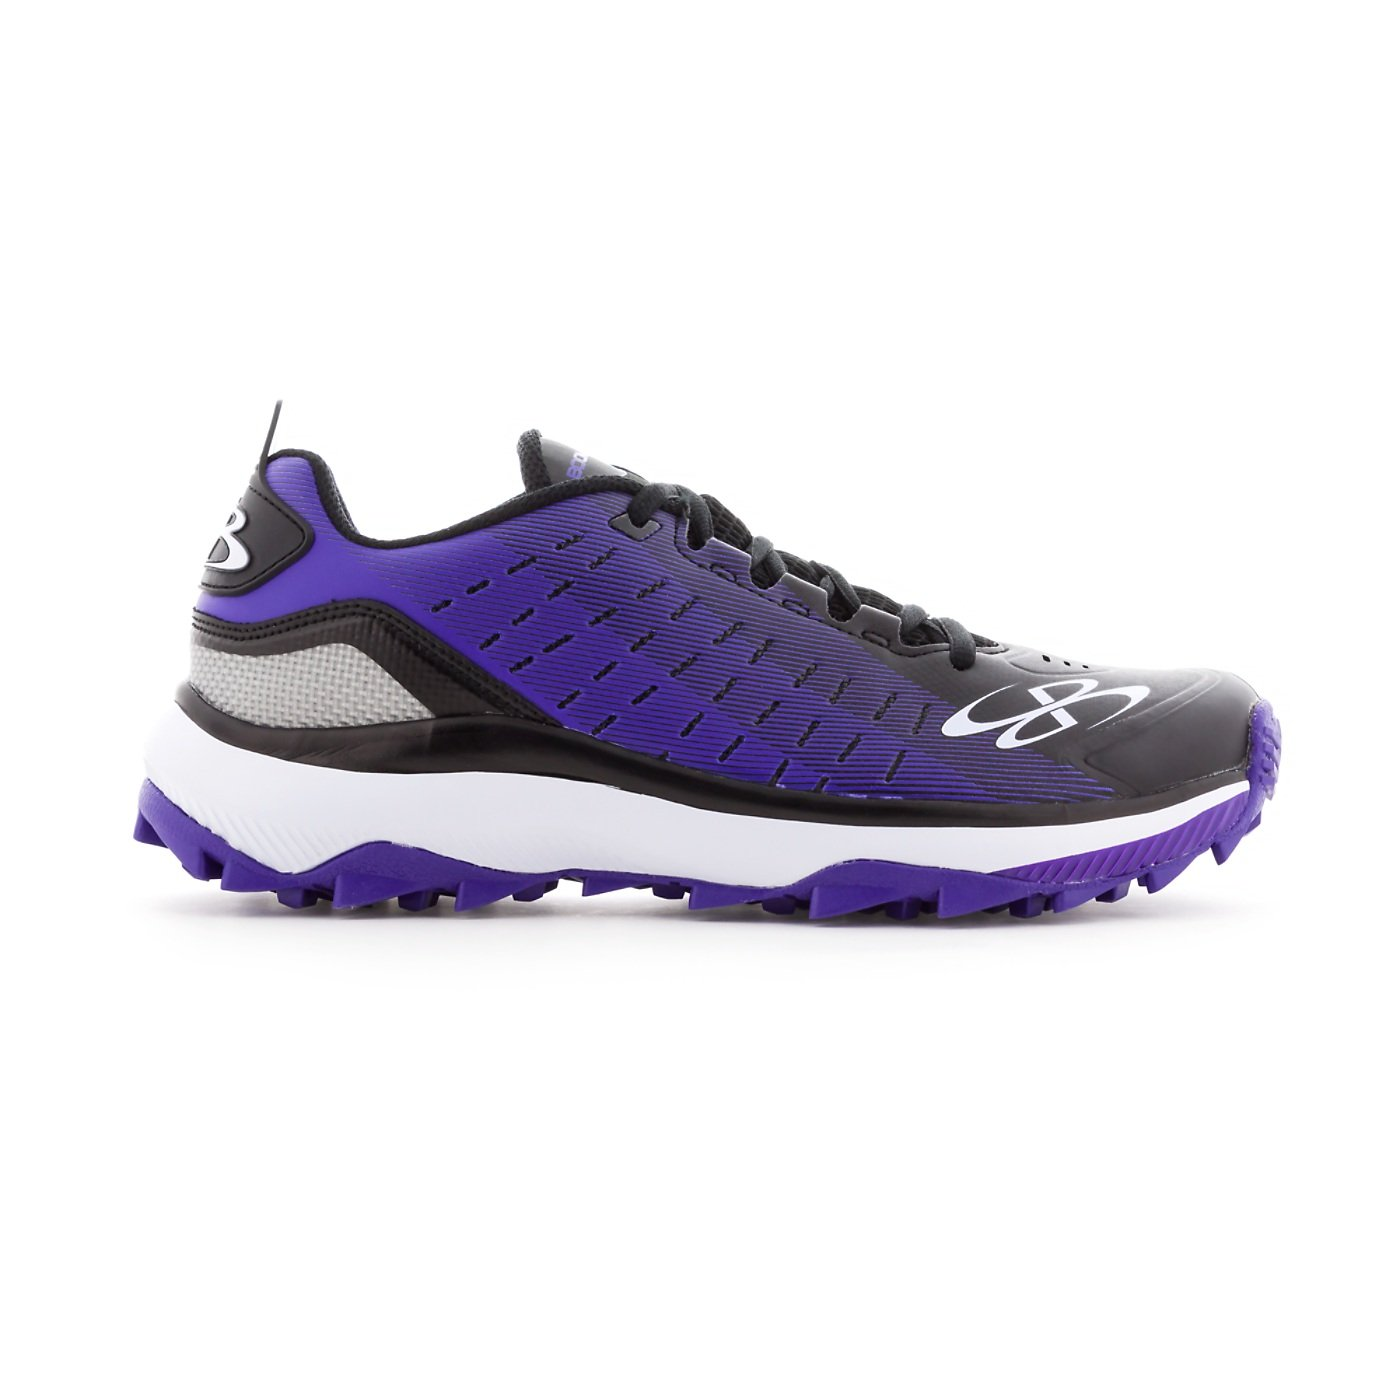 Boombah Men's Catalyst Turf Black/Purple - Size 8.5 by Boombah